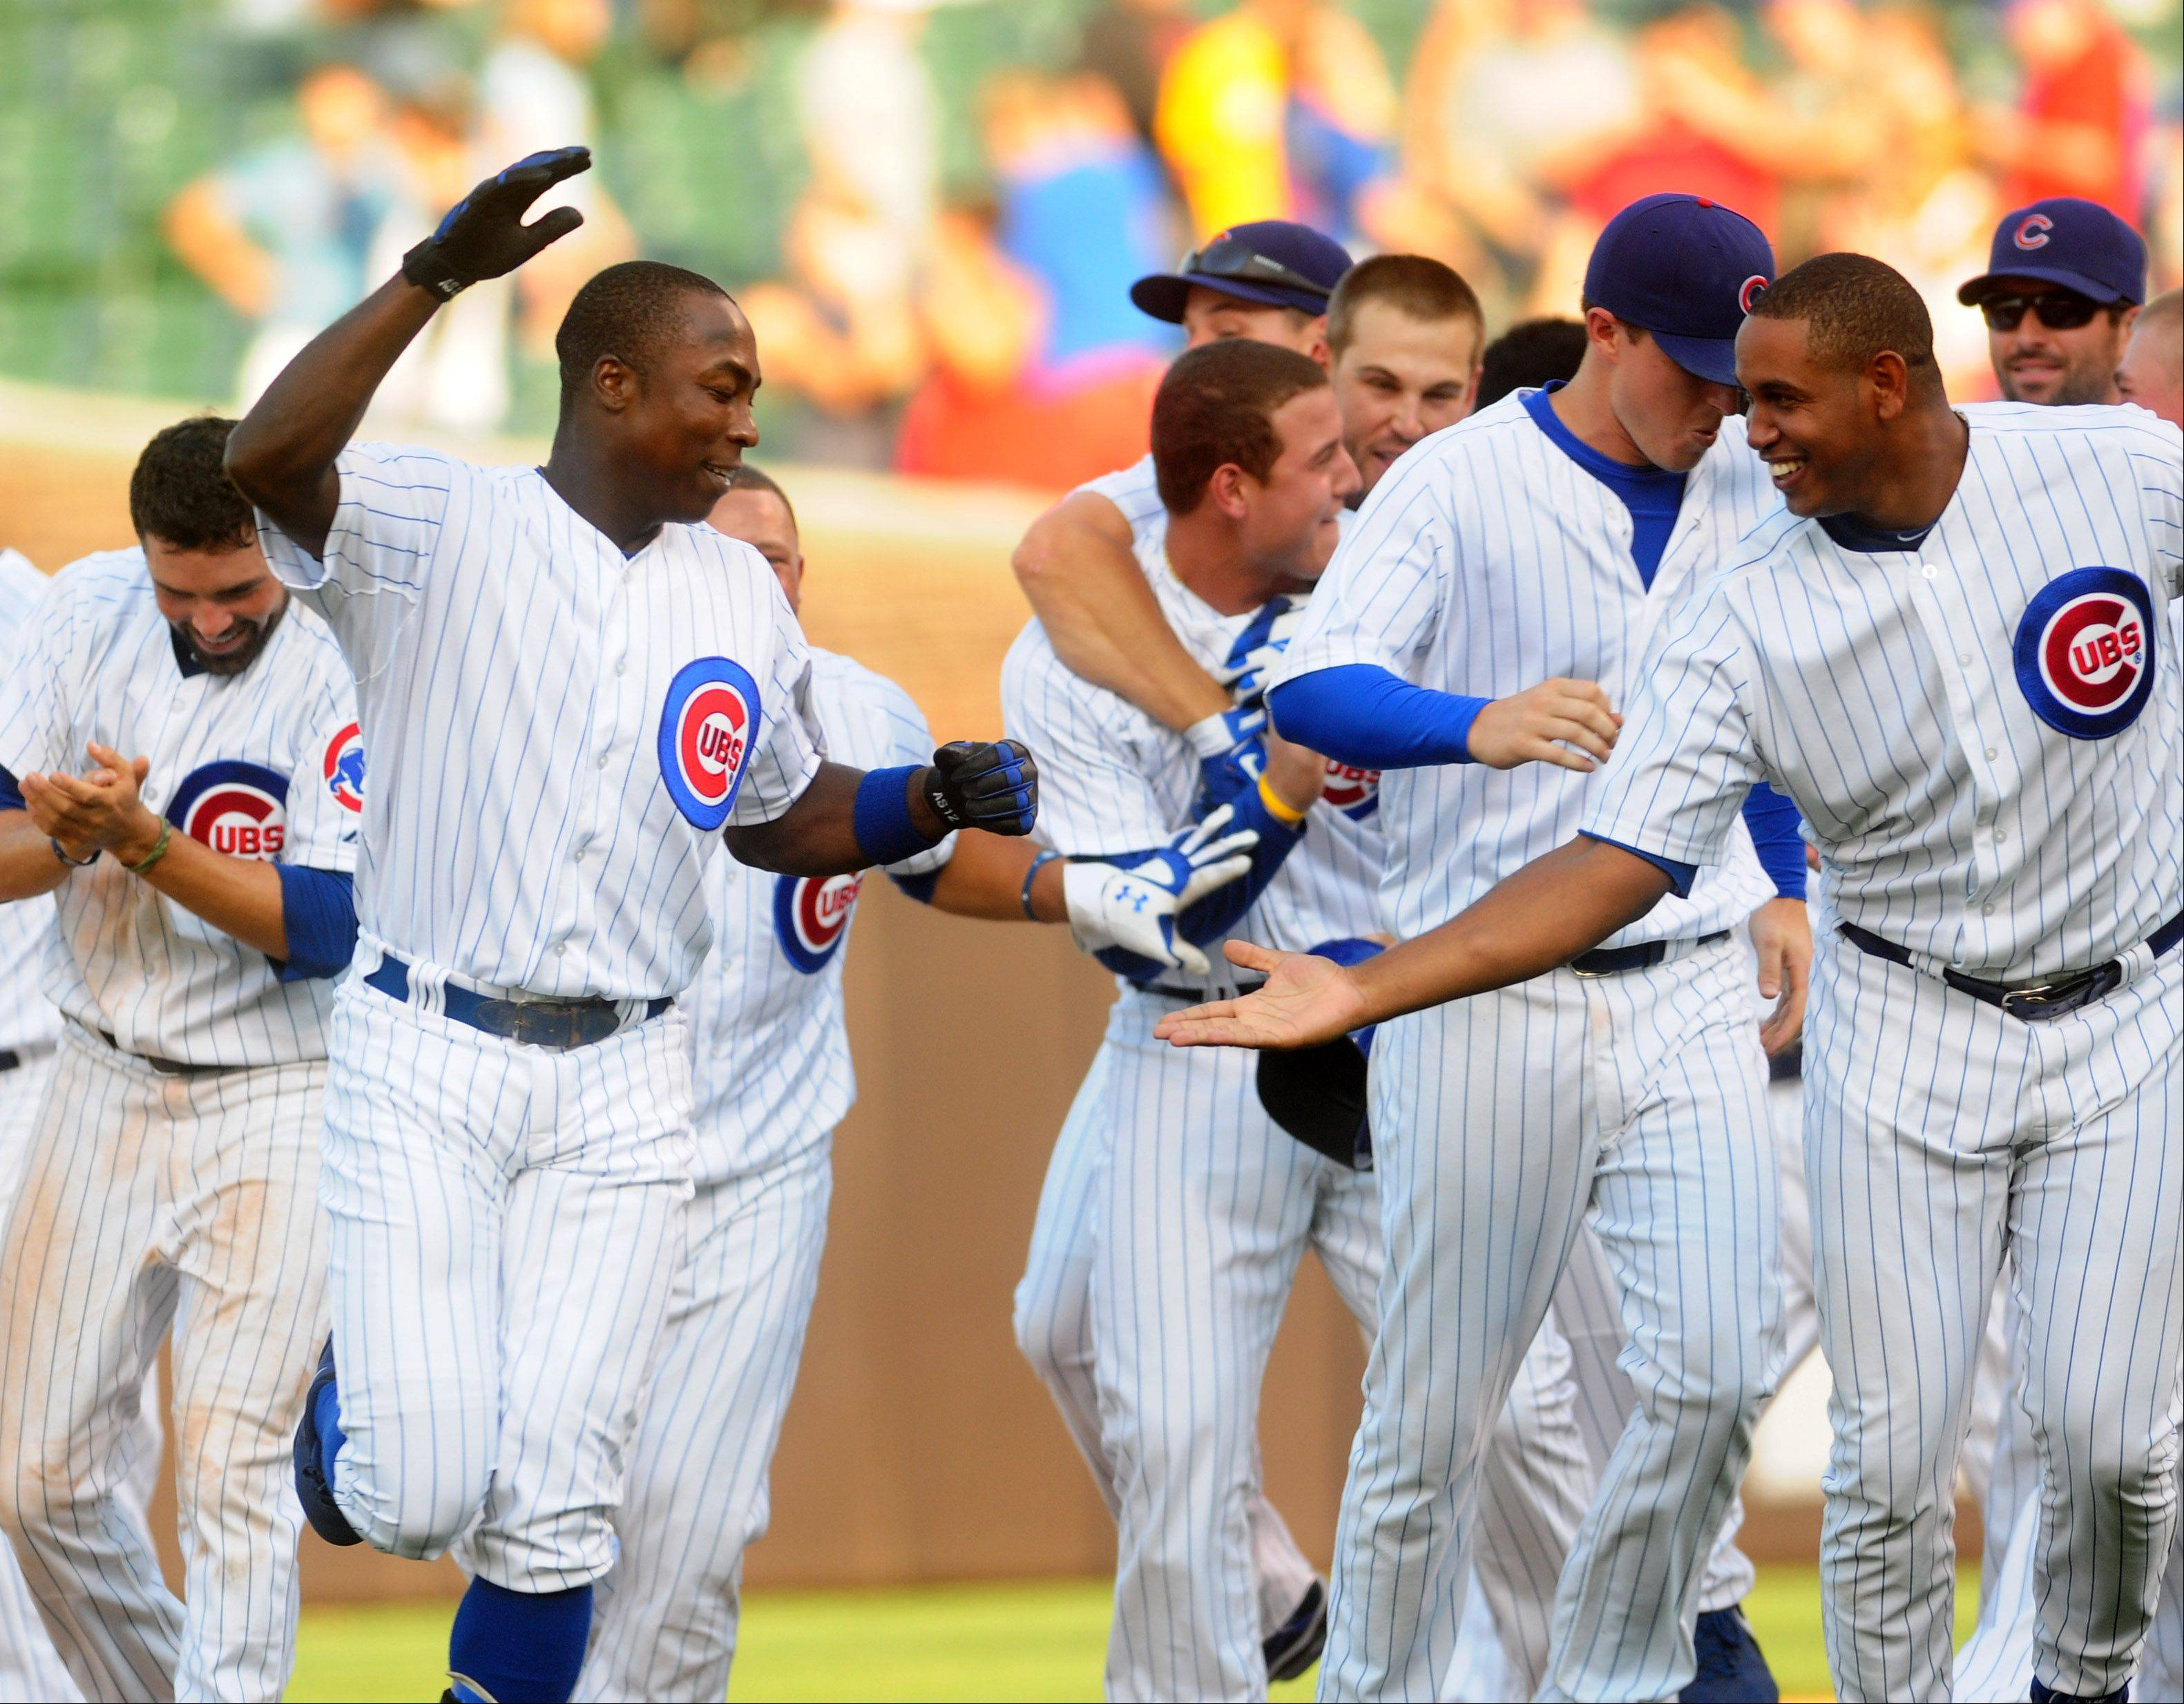 Alfonso Soriano celebrates after his game-winning hit Thursday against the Milwaukee Brewers.